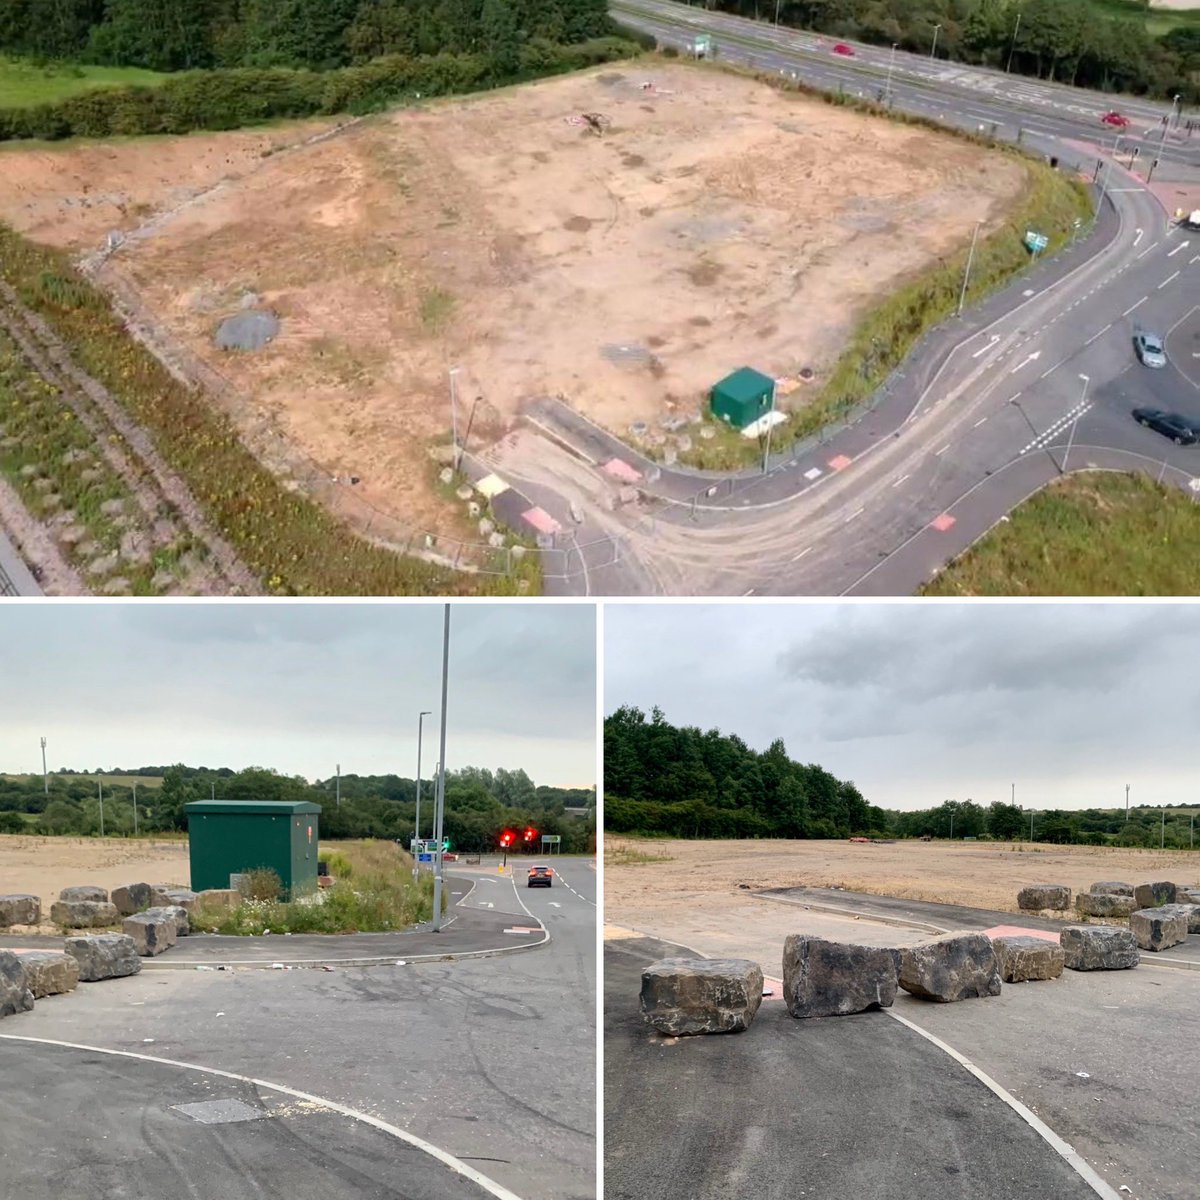 Progress now being made on site for a new #PFS and #DriveThru #CoffeeShop #Development off #A1M J59 #NewtonAycliffe - development supported by @DynamicTP #TransportAssessment https://t.co/46qaSrWhIp